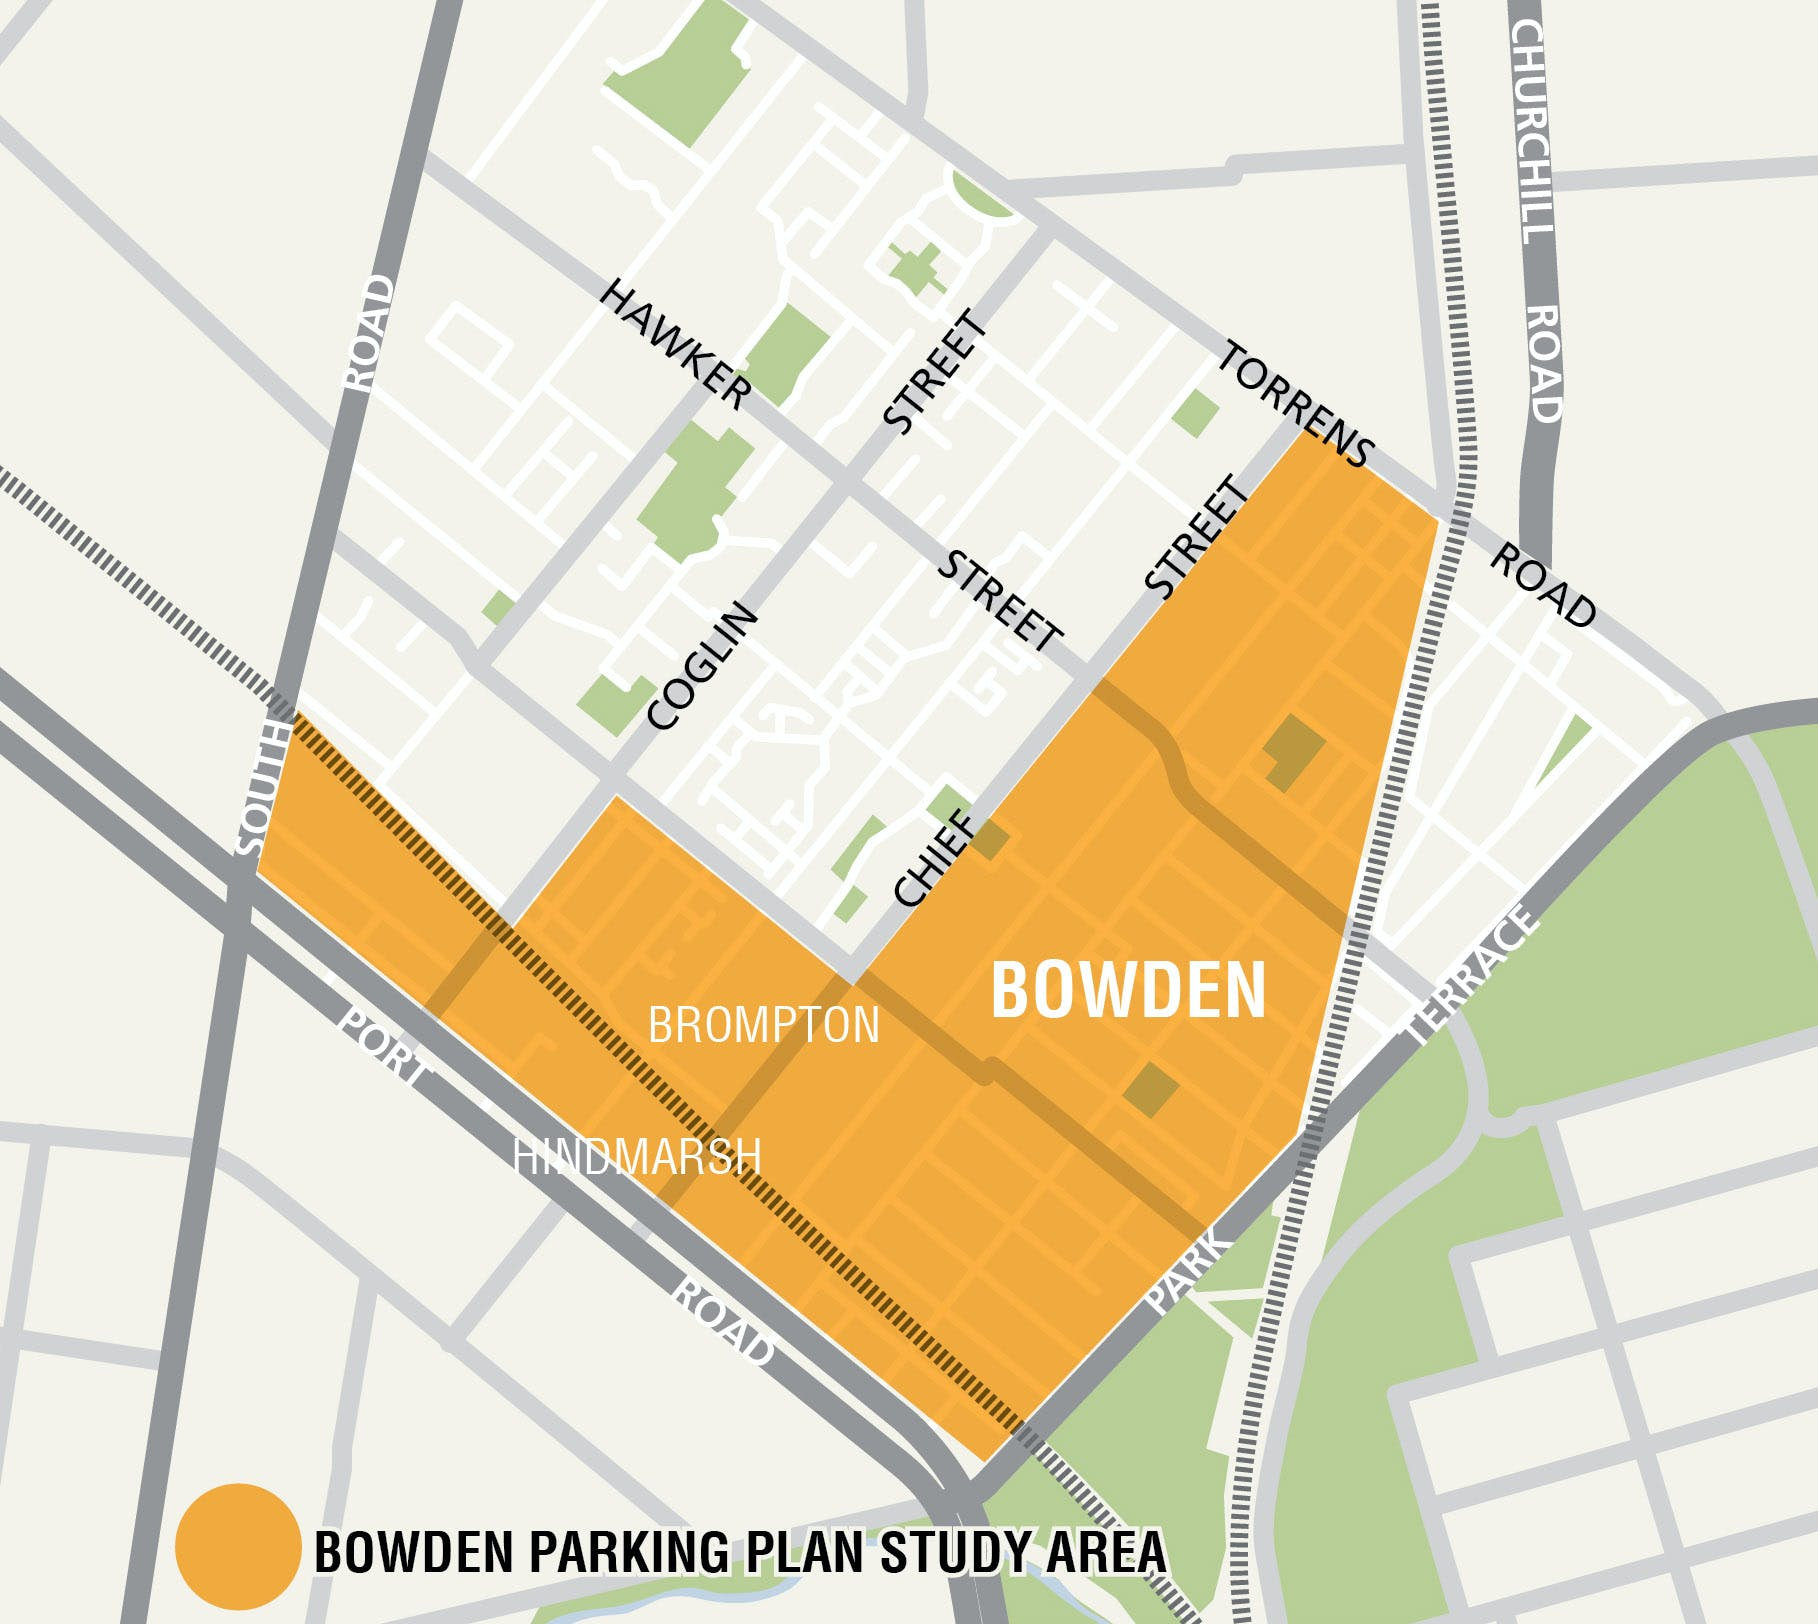 Bowden Locality Map